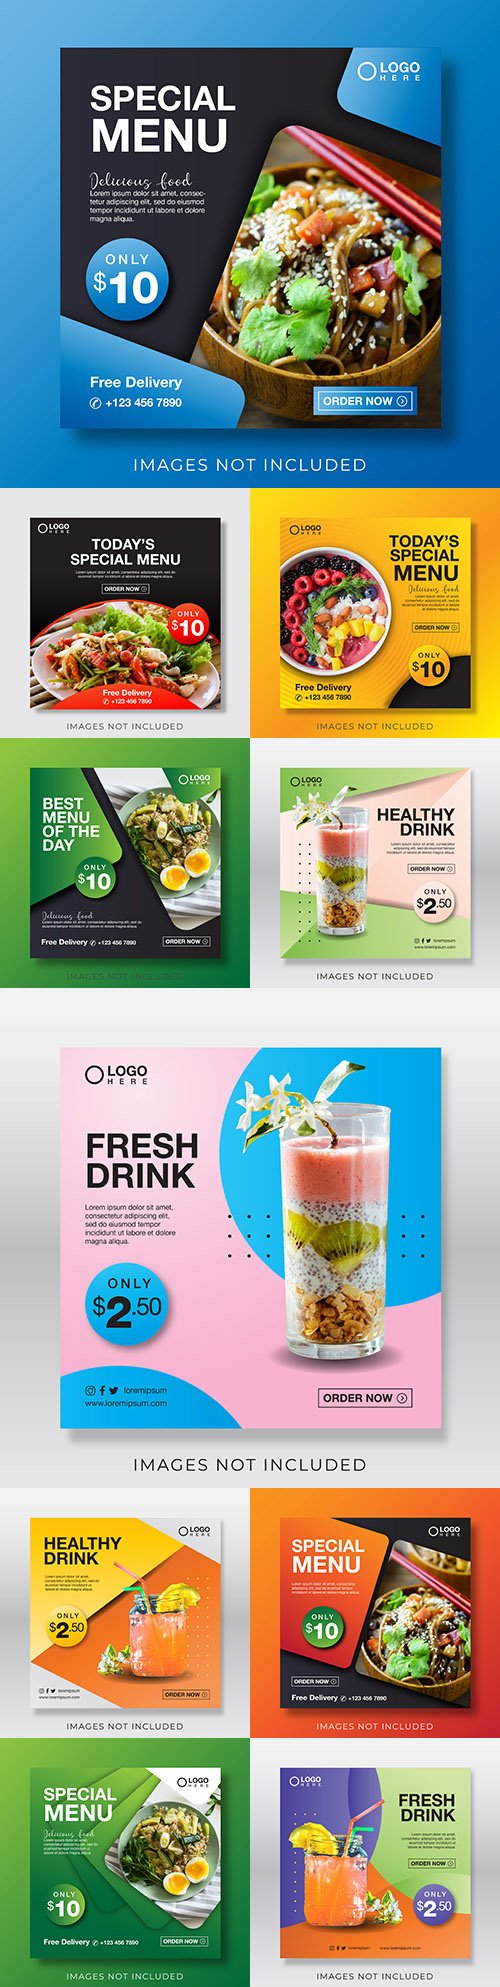 Special menu and drinks design template for social networks